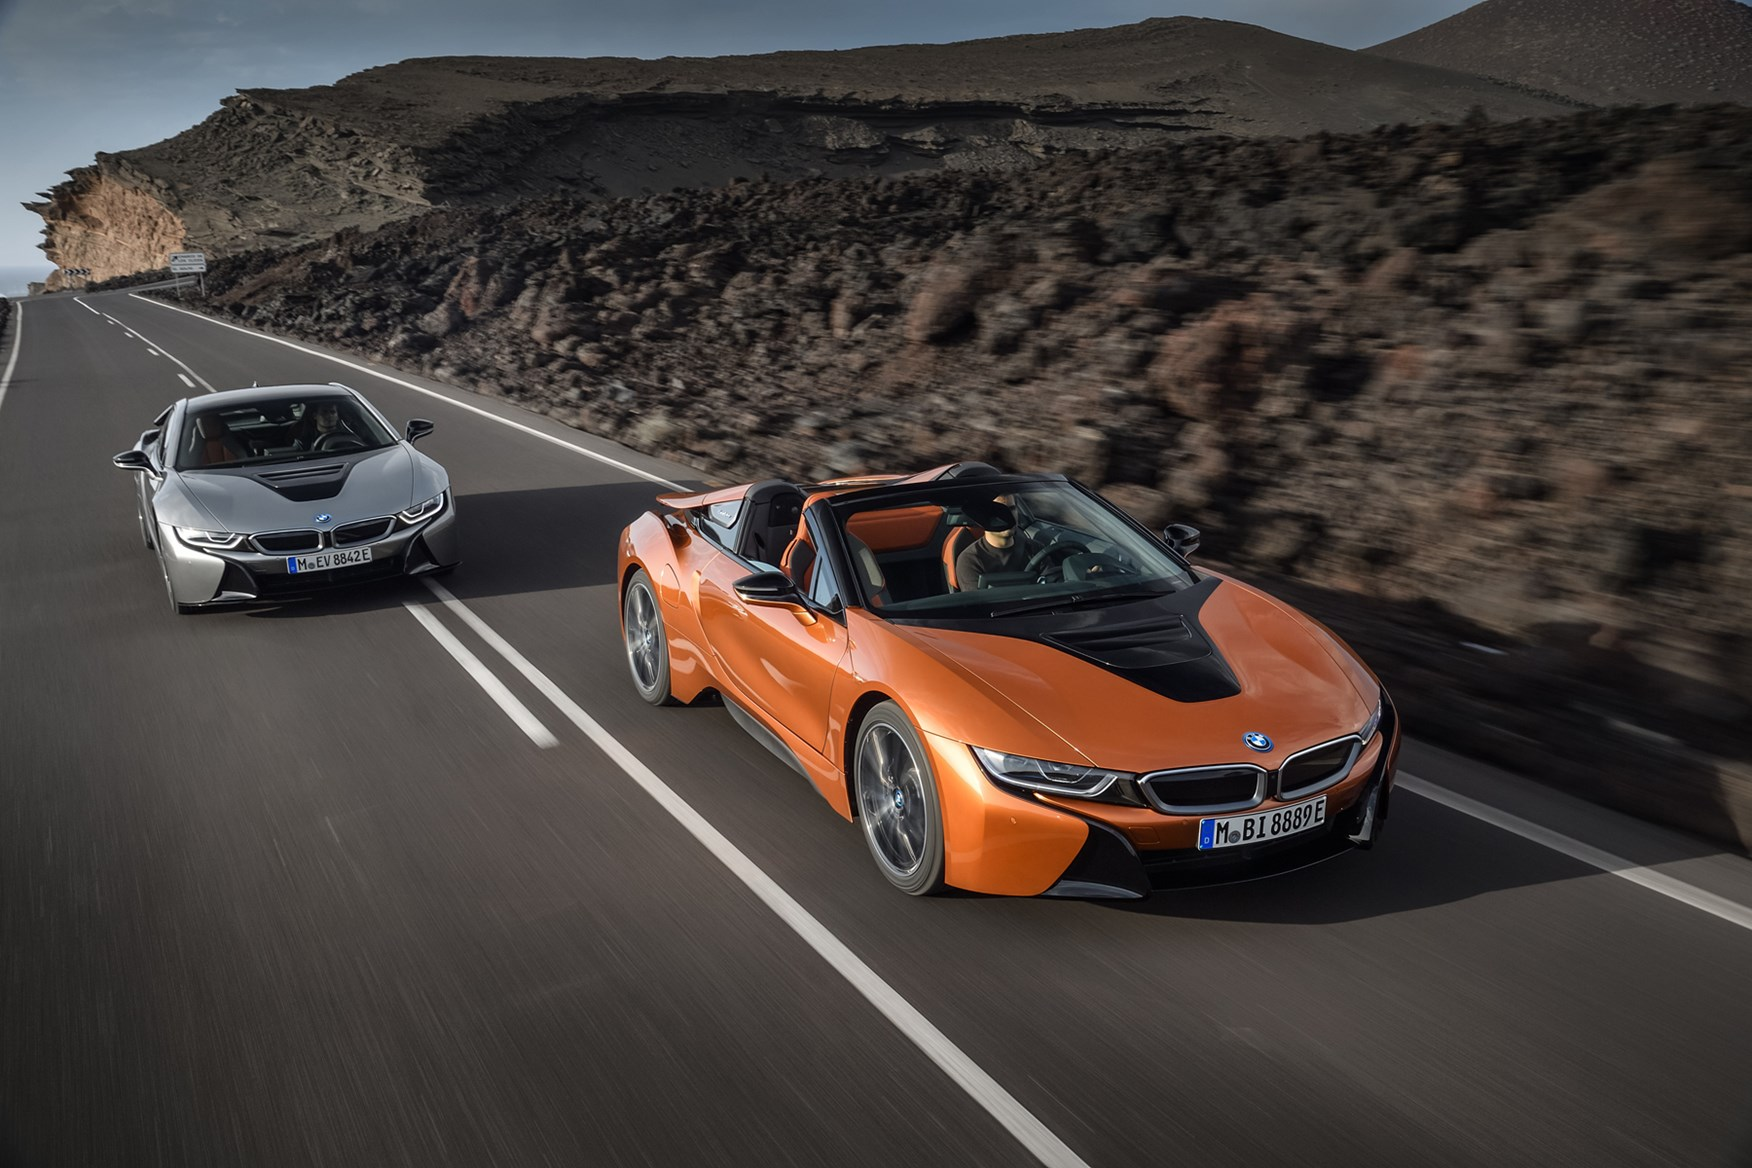 Bmw 2018 I8 Roadster Driving